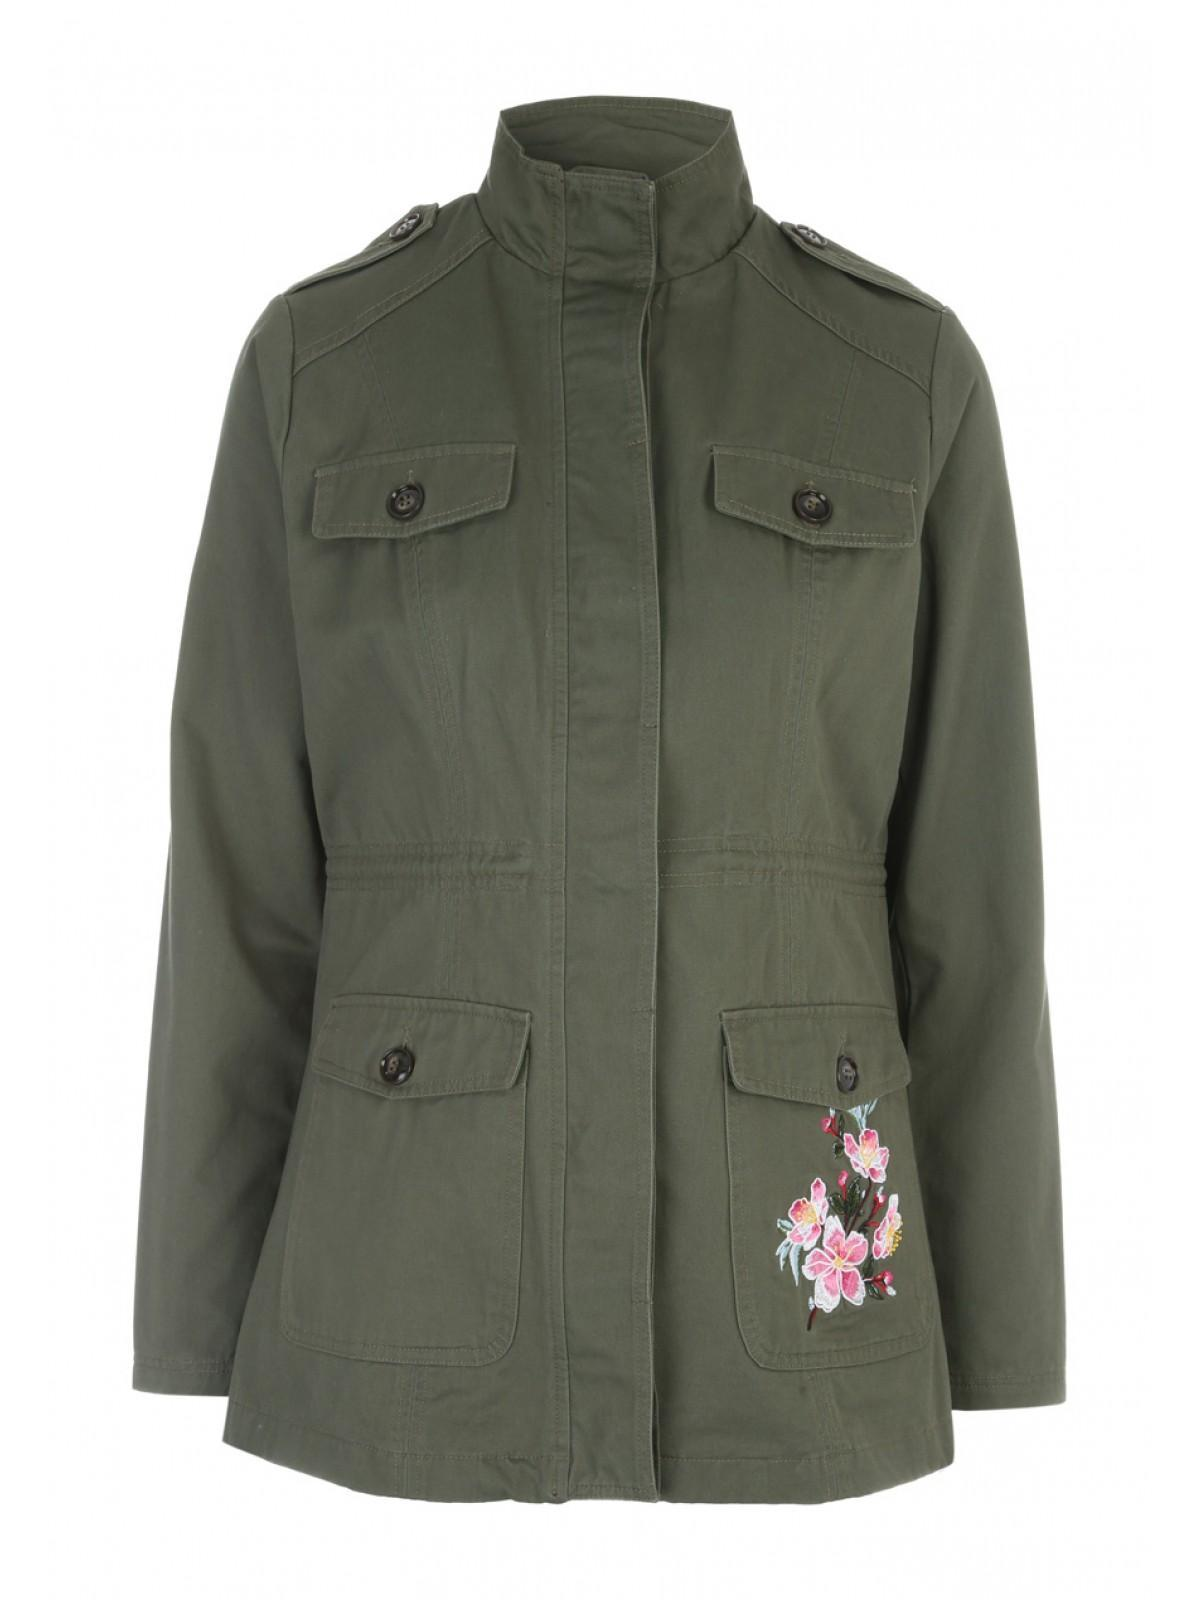 Women's Outerwear | Coats and Jackets | Peacocks | Peacocks